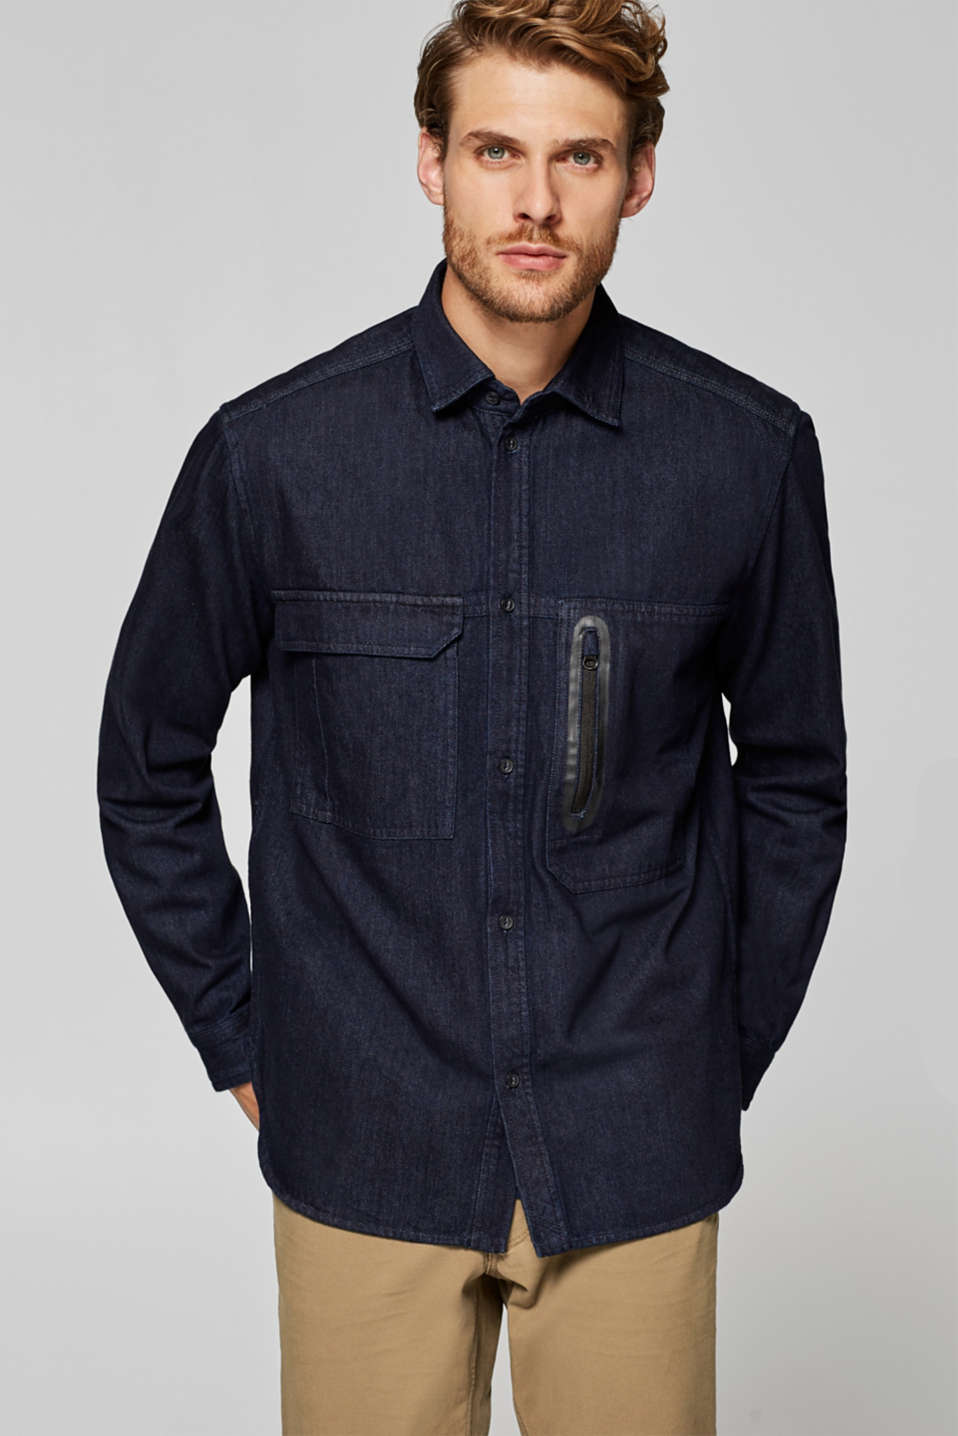 Esprit - Dark denim overshirt